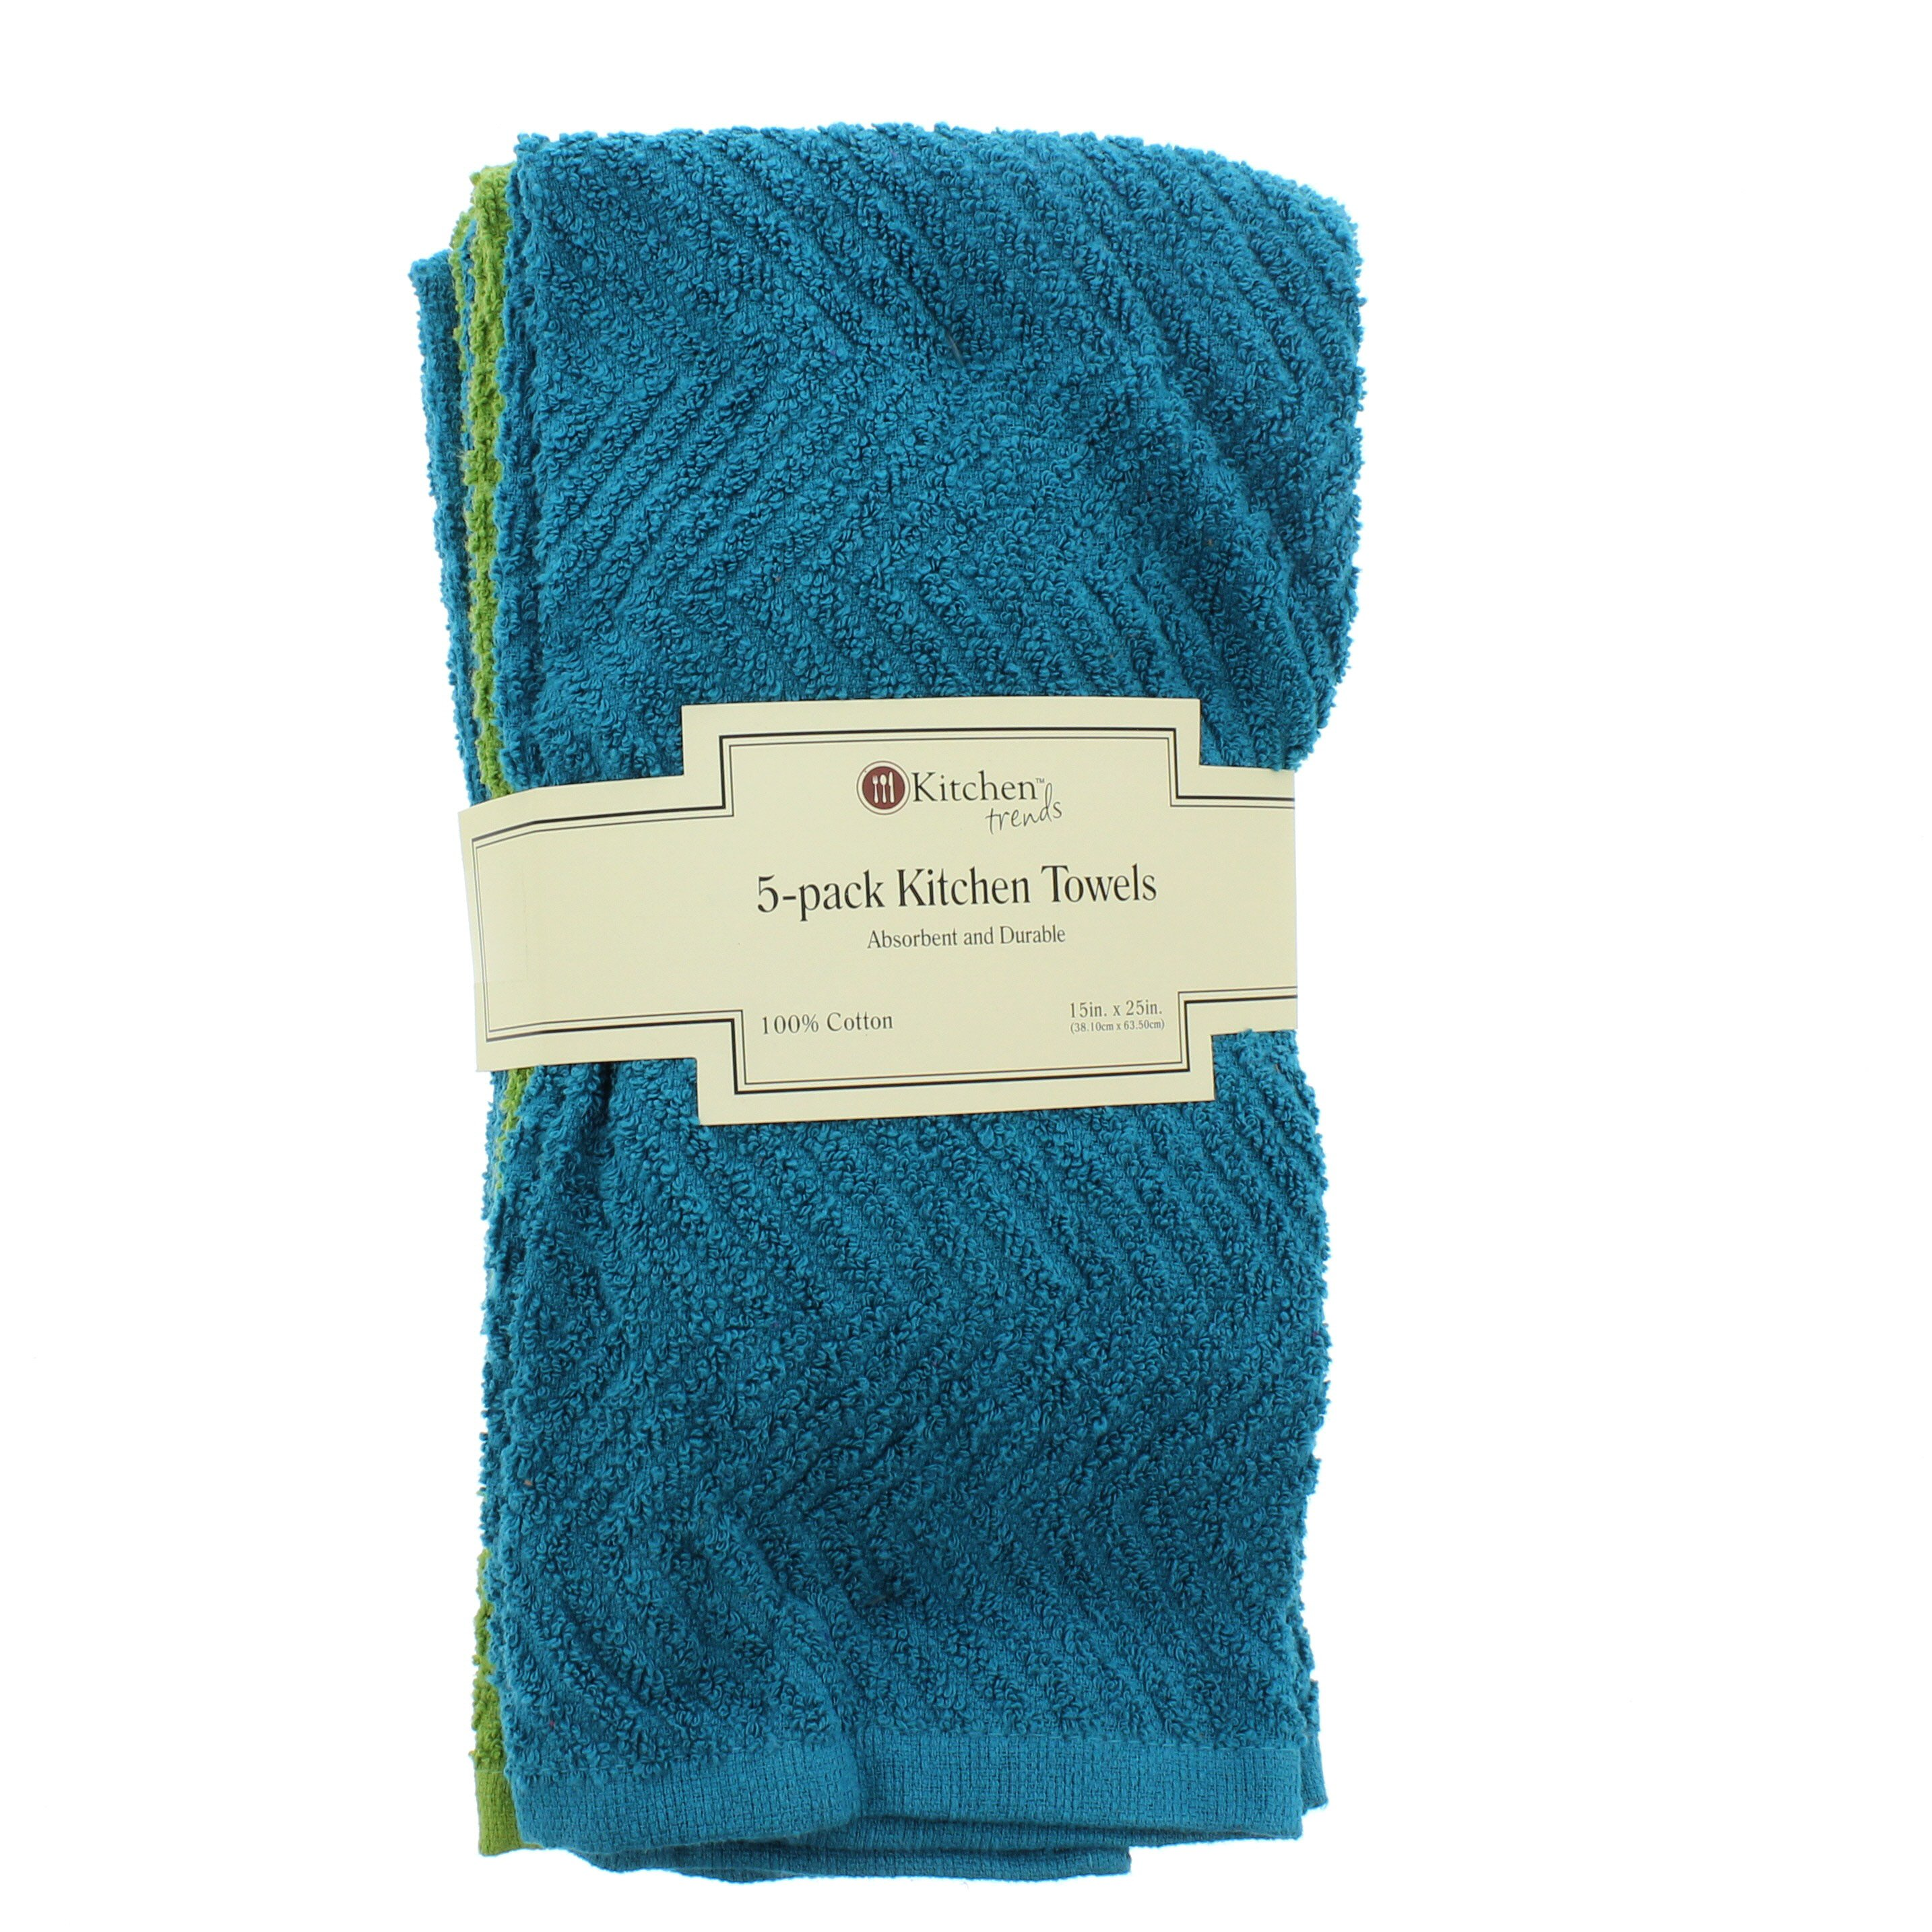 Kitchen Trends Towels Orted Colors Linens At H E B